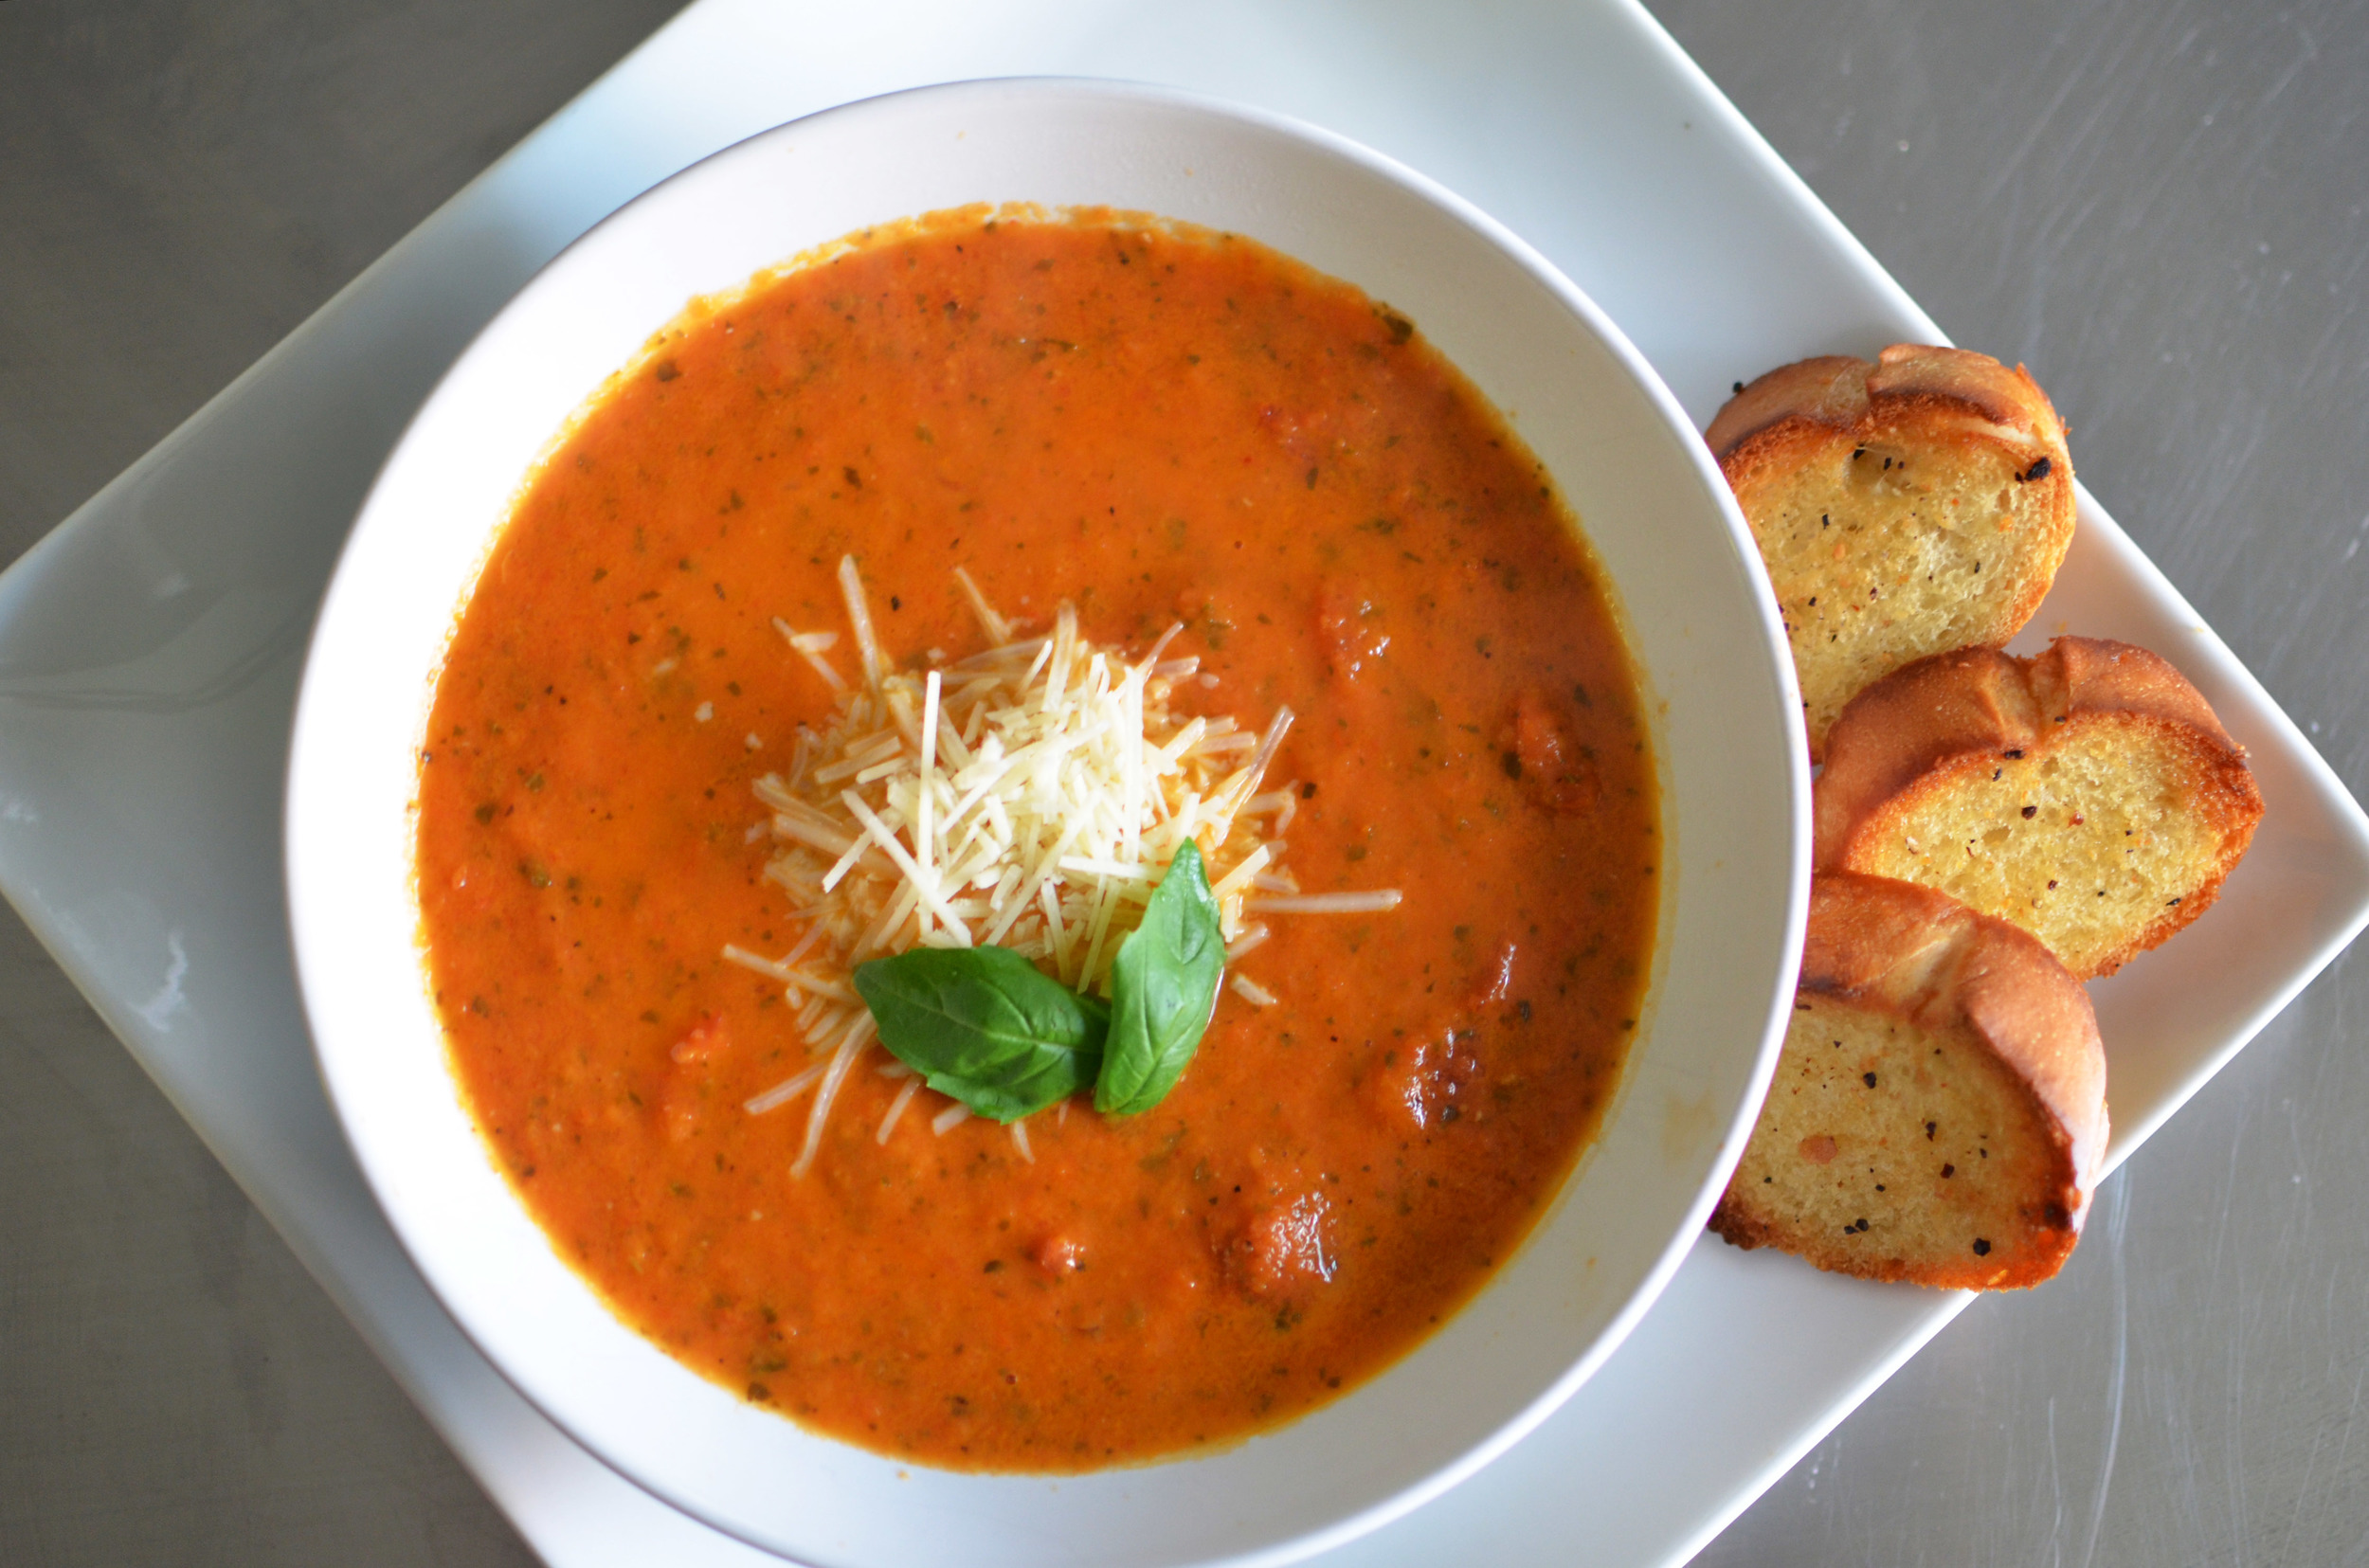 Ina Garten Soup Recipes tomato-basil soup recipe (ina garten/chrissy teigen) — the glossier